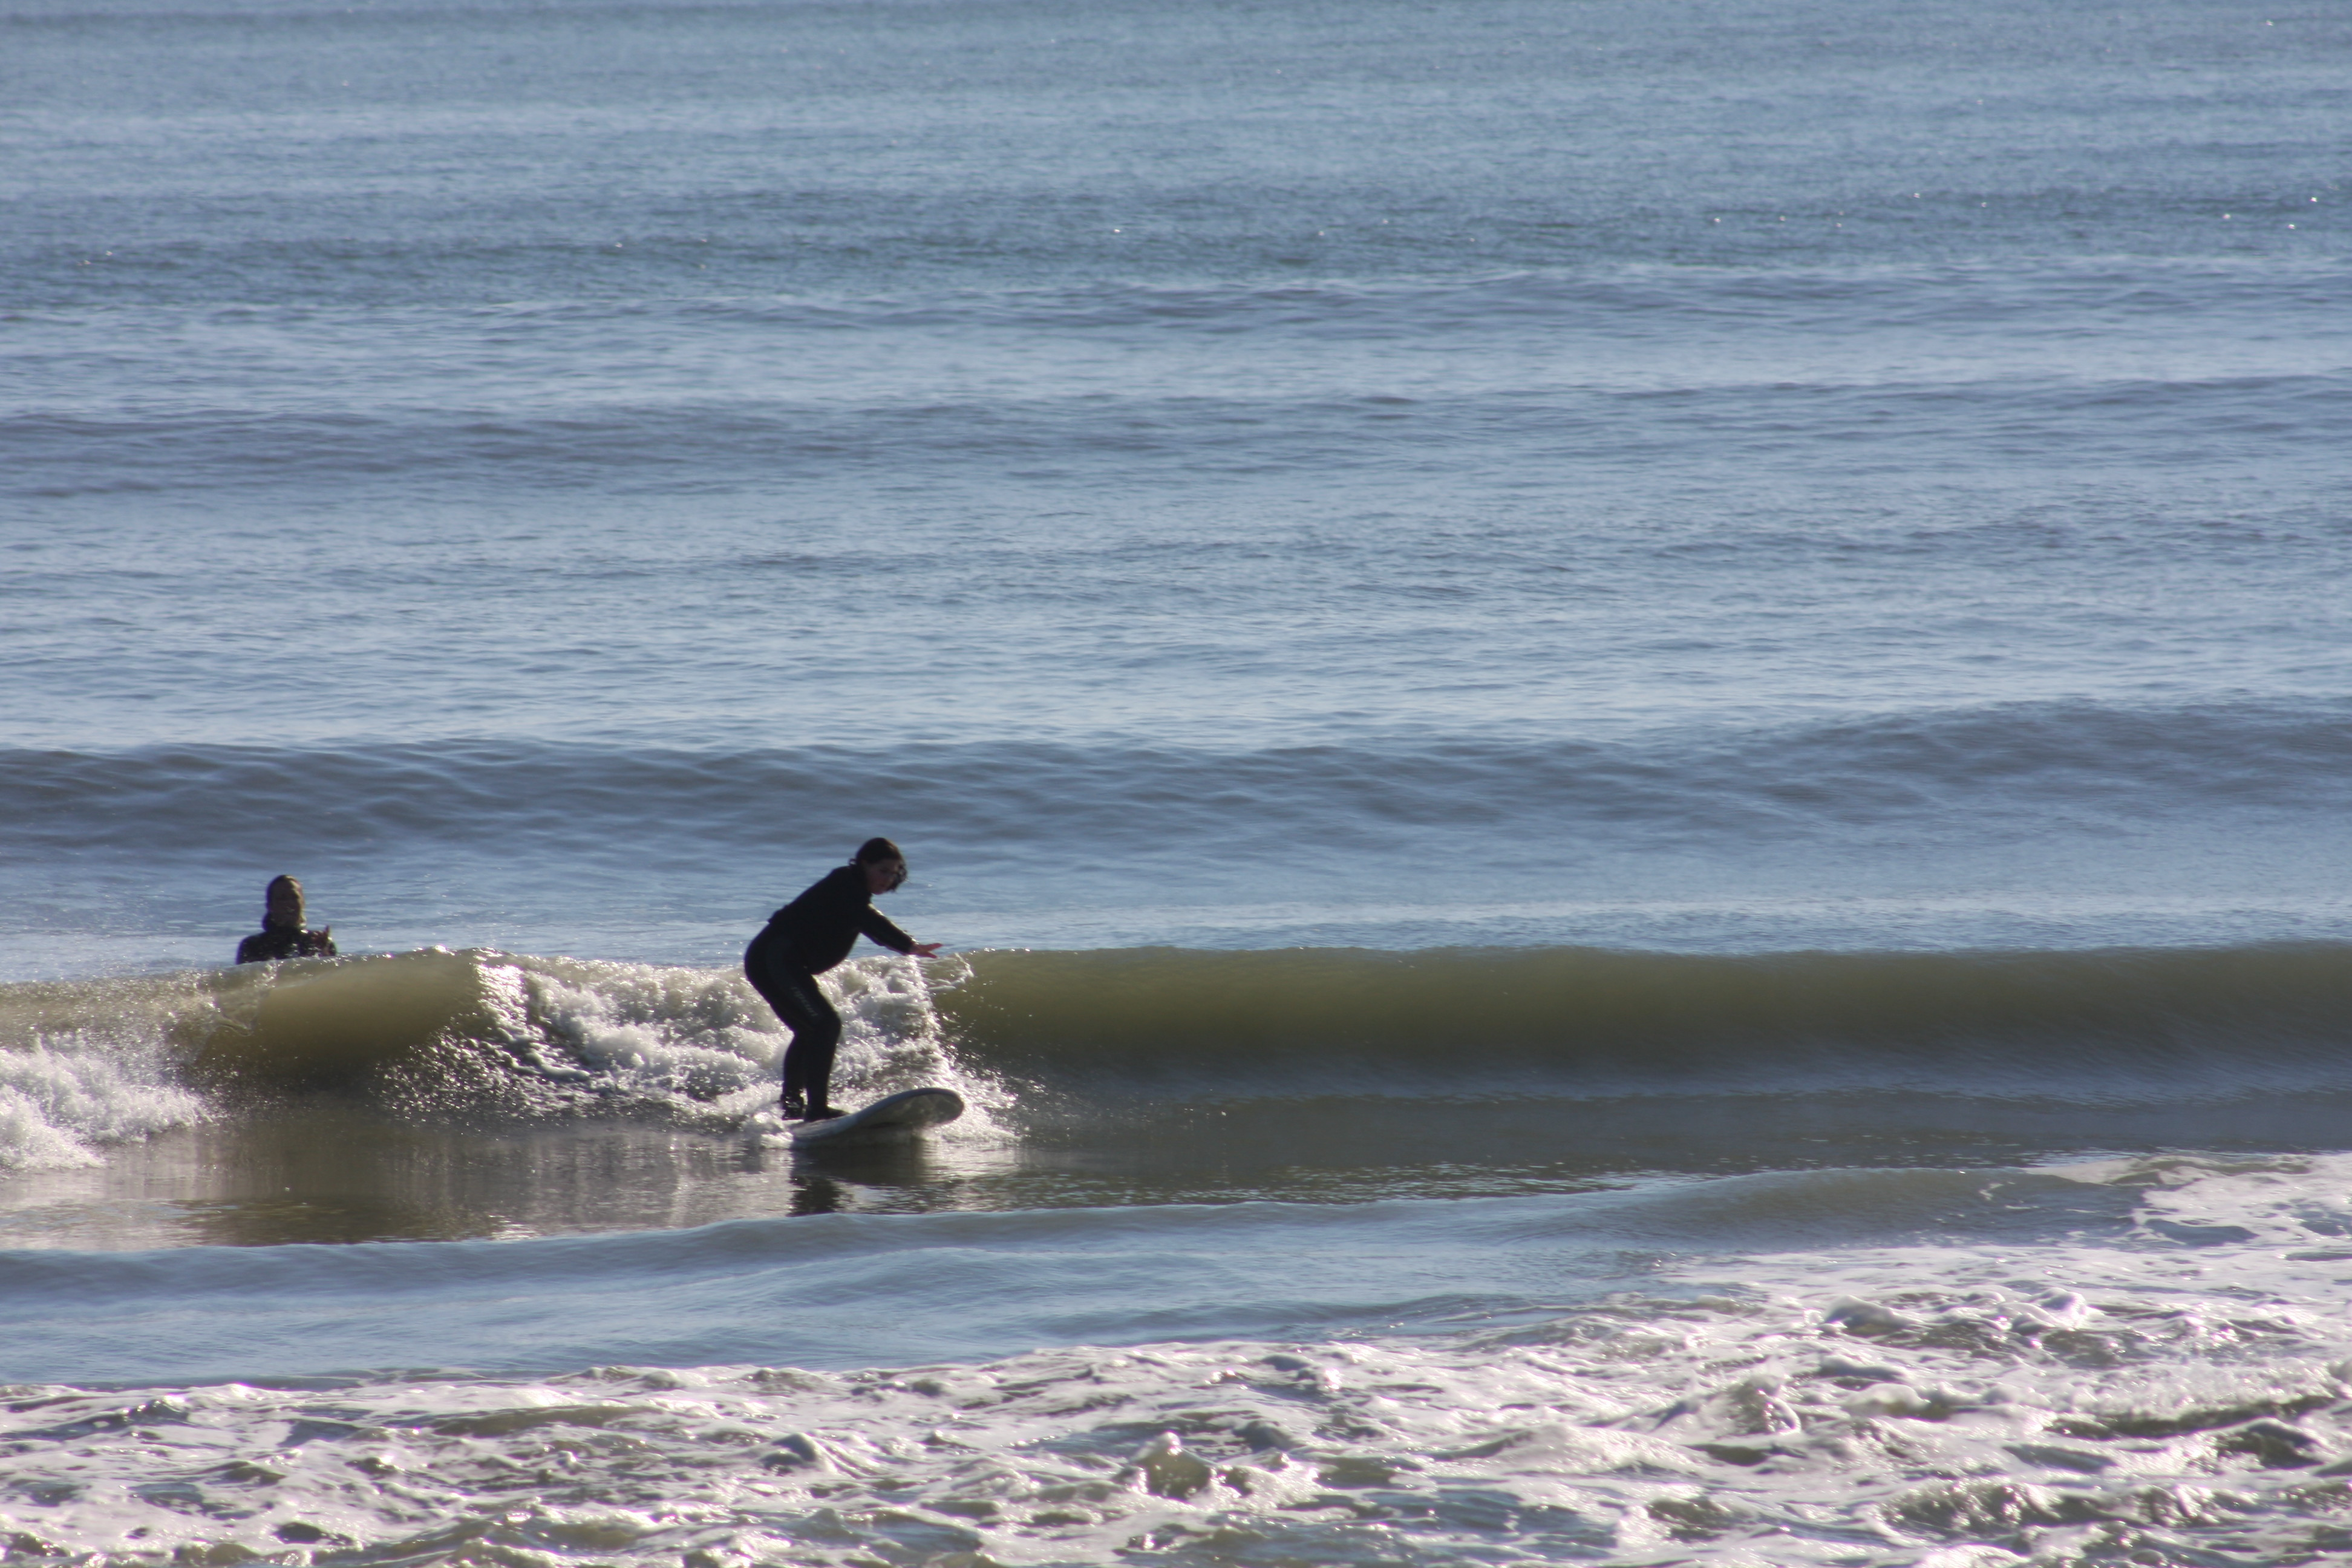 First time surfer getting some good waves during winter sessions